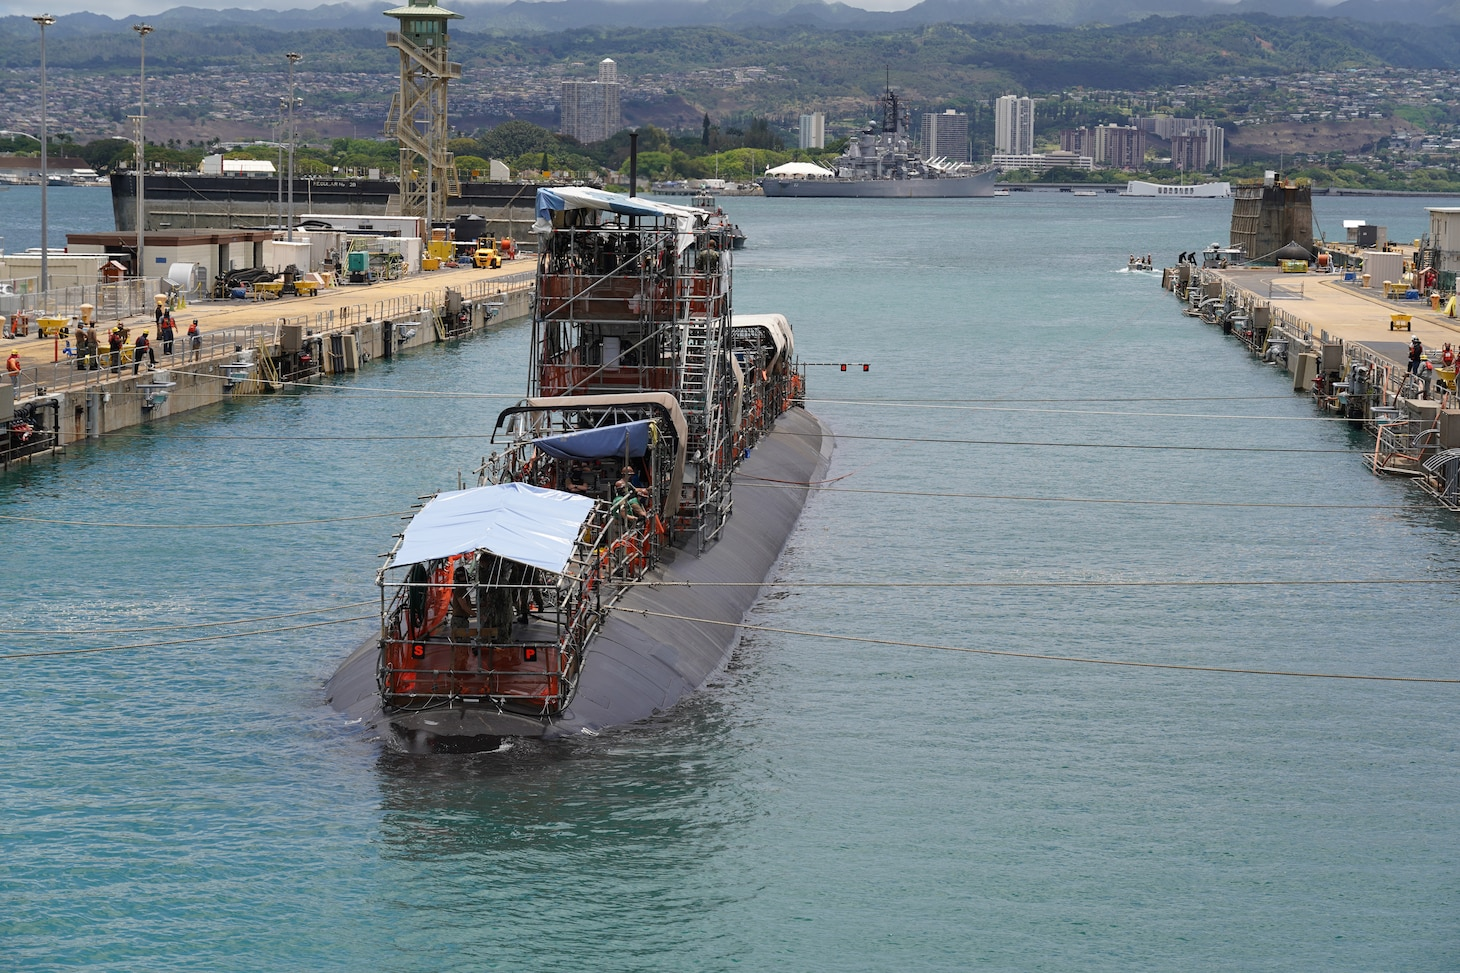 Pearl Harbor Naval Shipyard & Intermediate Maintenance Facility successfully undocked Los Angeles-class fast-attack submarine USS Columbia (SSN 771) July 16, 2020 from Dry Dock #2. The undocking was a major milestone in completing the submarine's engineered overhaul (EOH) availability.